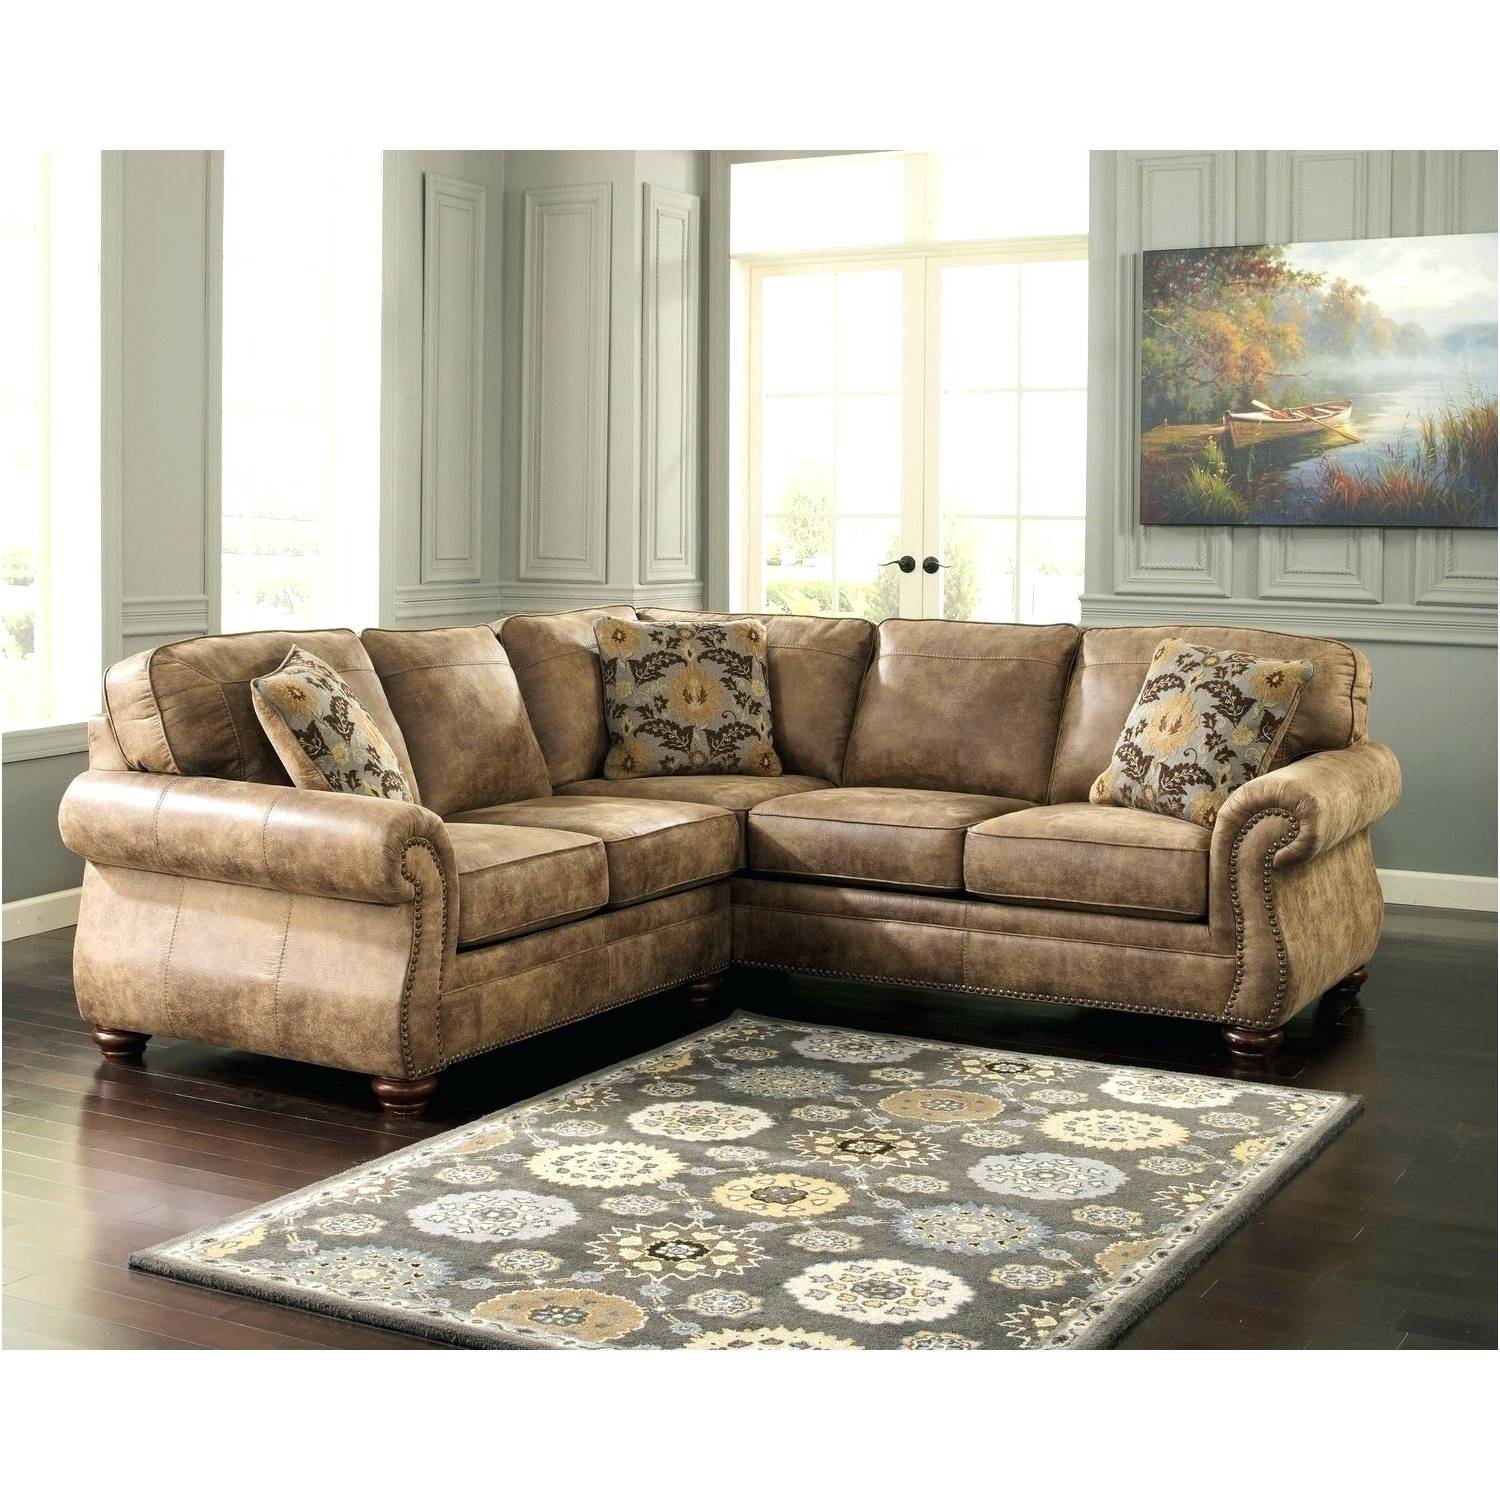 Sectionals Sofa S Sofas Ikea For Sale Sectional Small Spaces With Popular Sectional Sofas In Toronto (View 13 of 15)